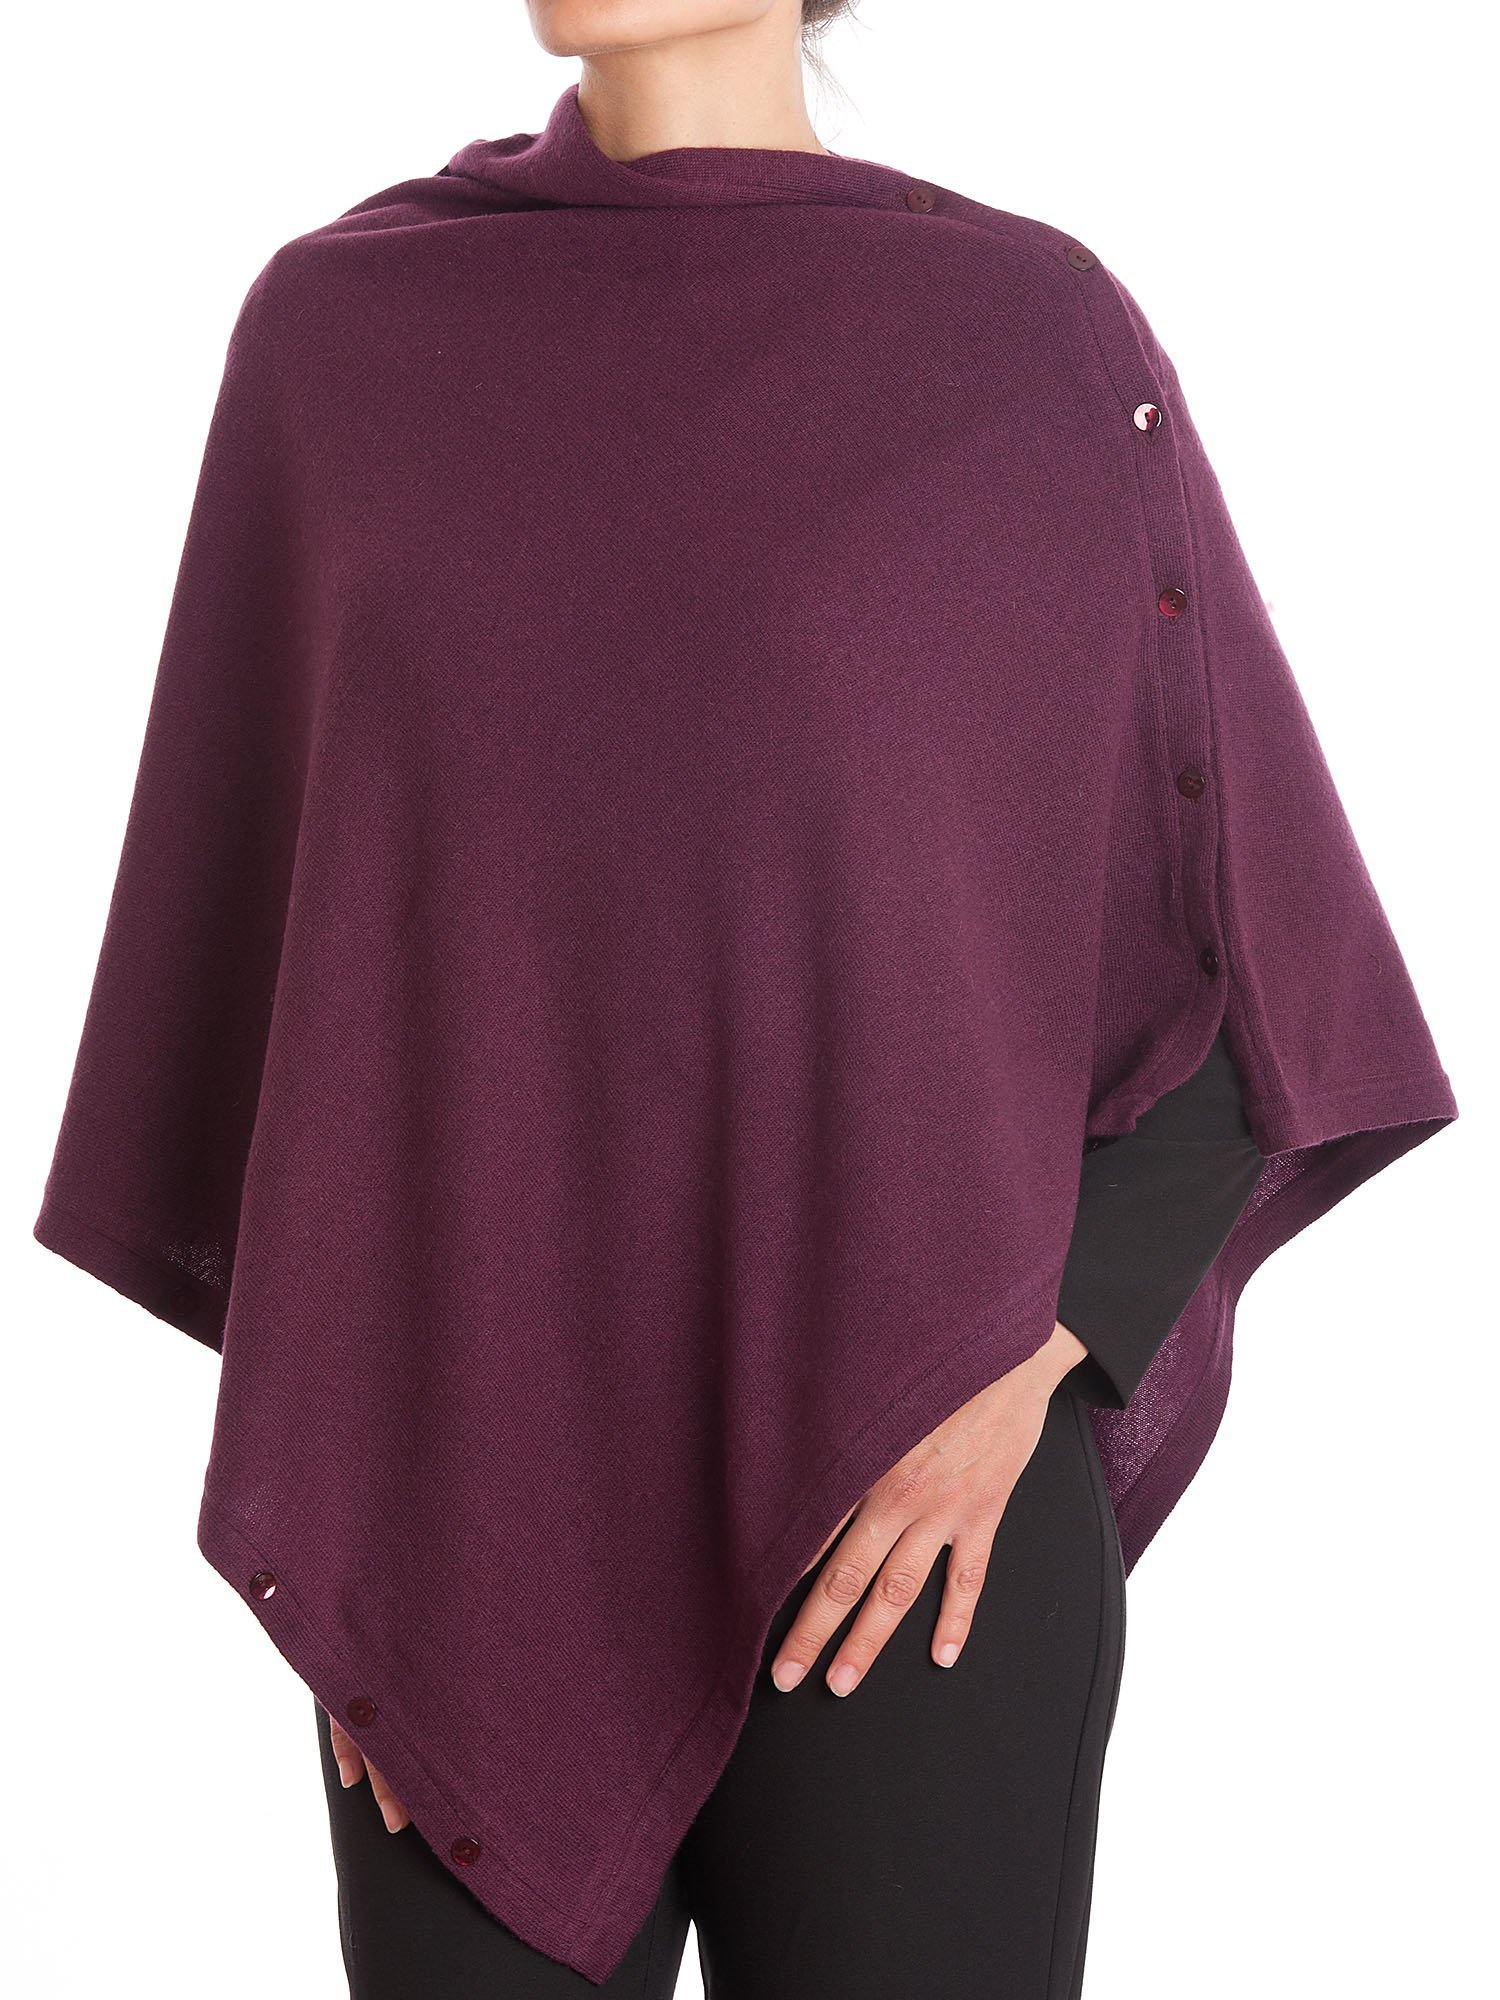 DALLE PIANE CASHMERE - Poncho with Buttons Cashmere Blended Yarns - Made in Italy, Color: Bordeaux, One Size